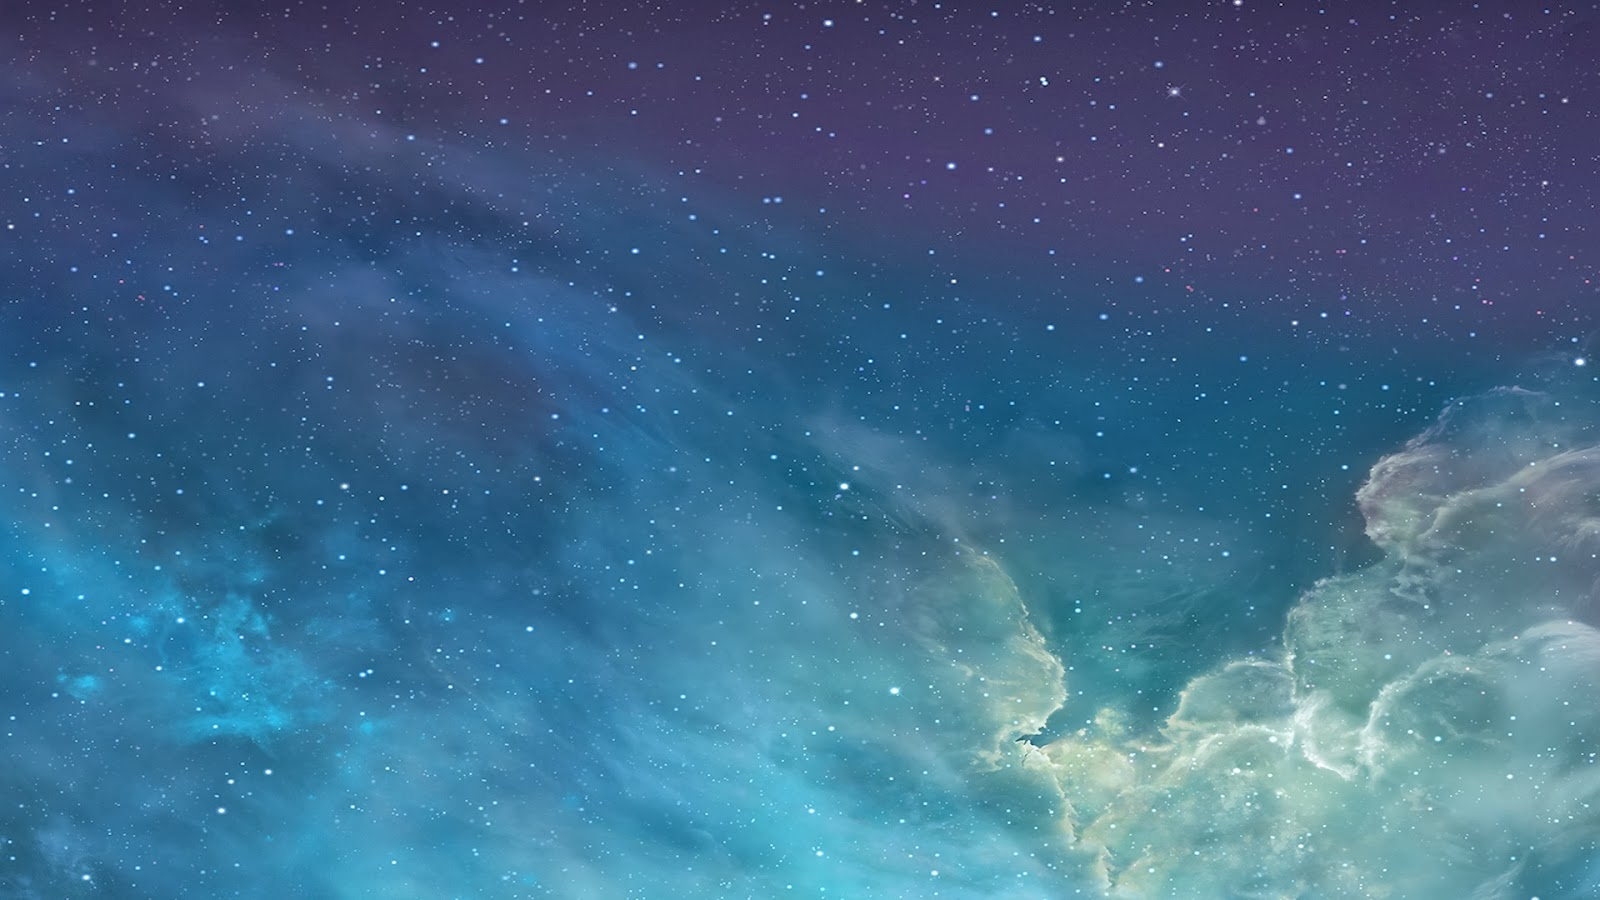 IOS 7 Galaxy | Full HD Desktop Wallpapers 1080p